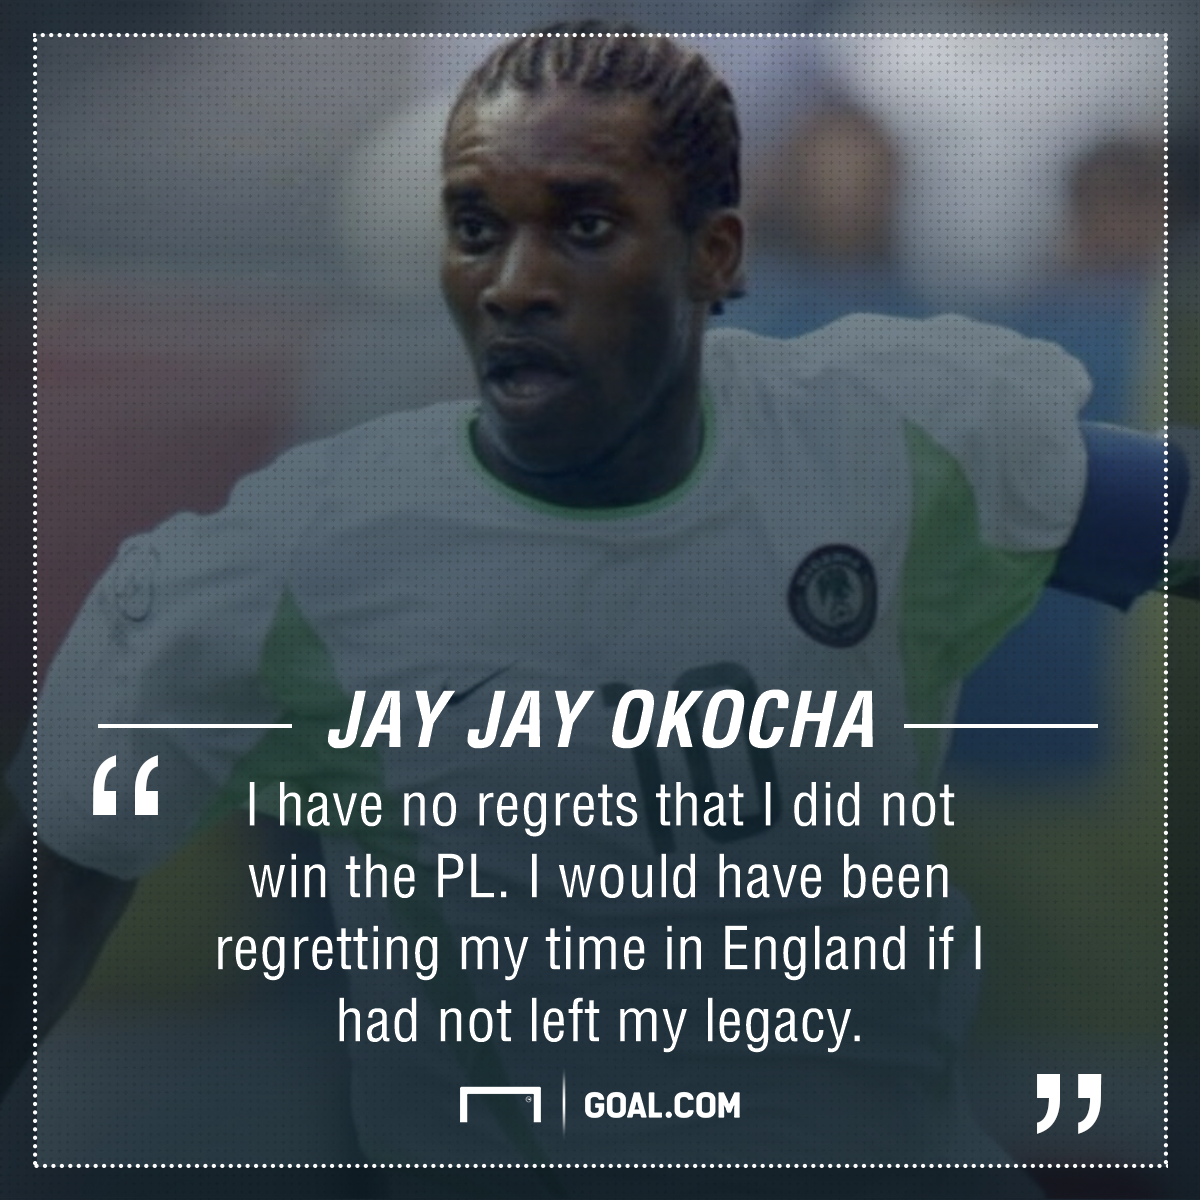 Okocha on his PL time